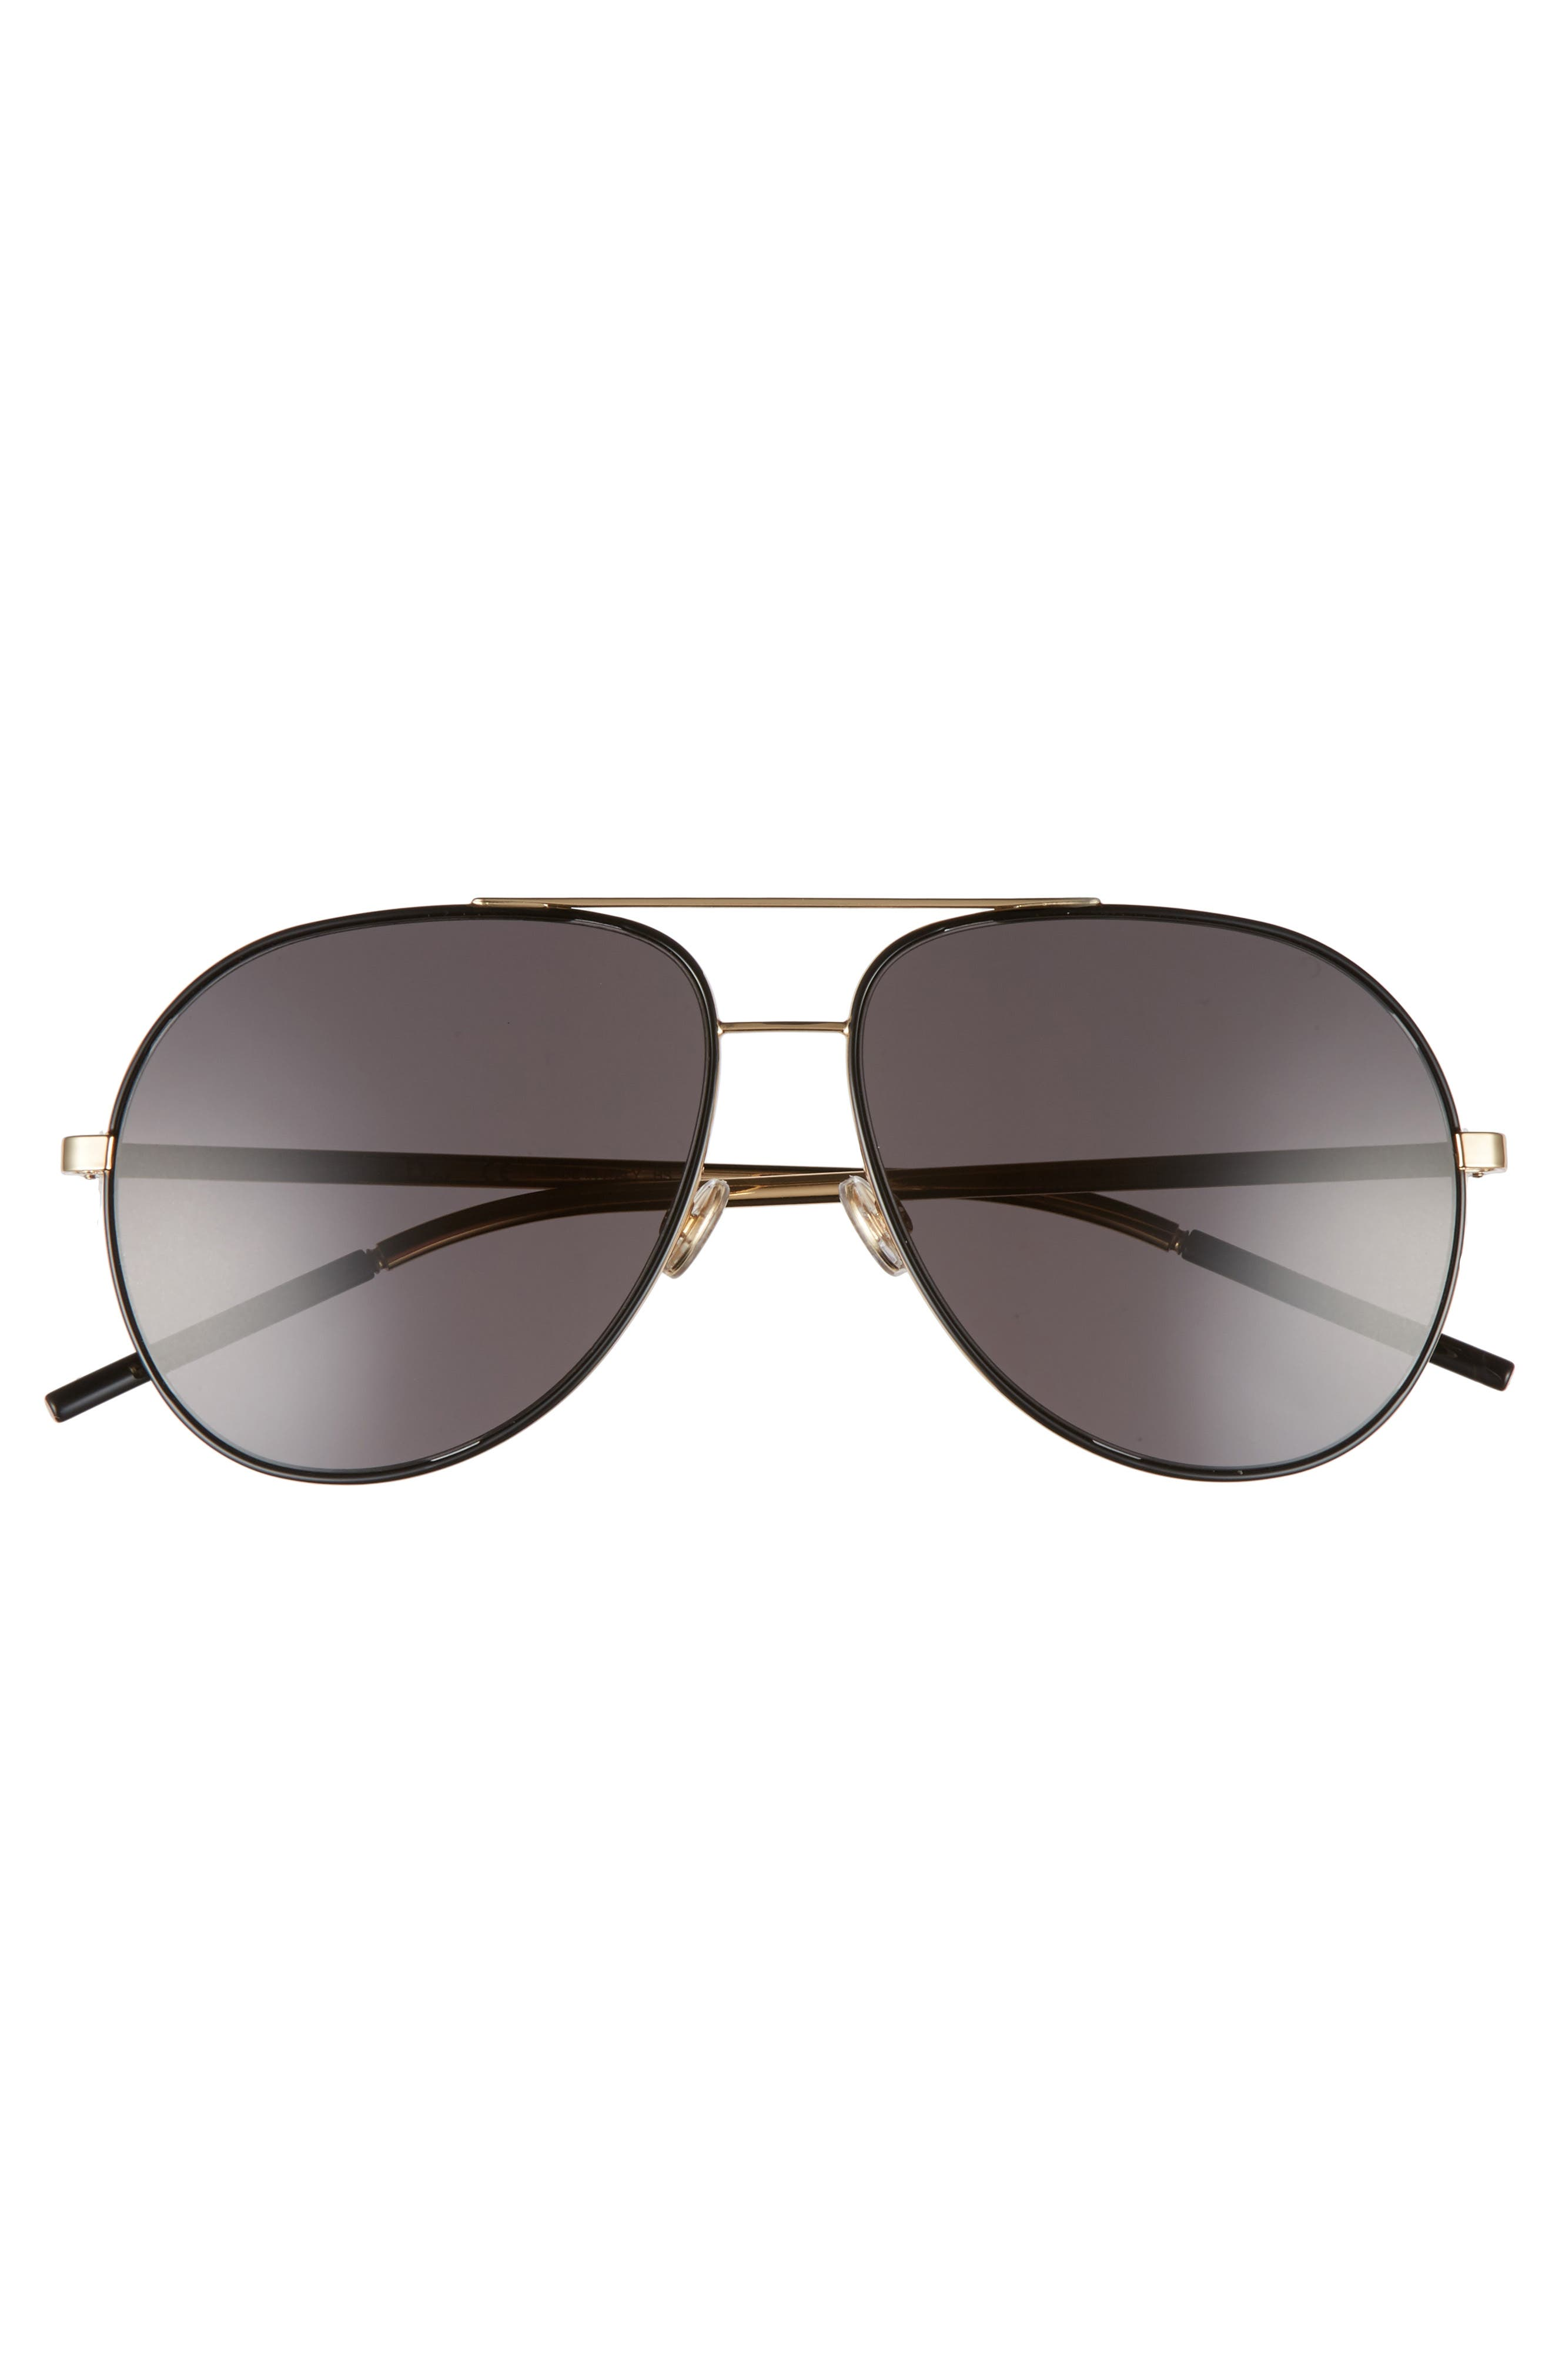 Astrals 59mm Aviator Sunglasses,                             Alternate thumbnail 3, color,                             001